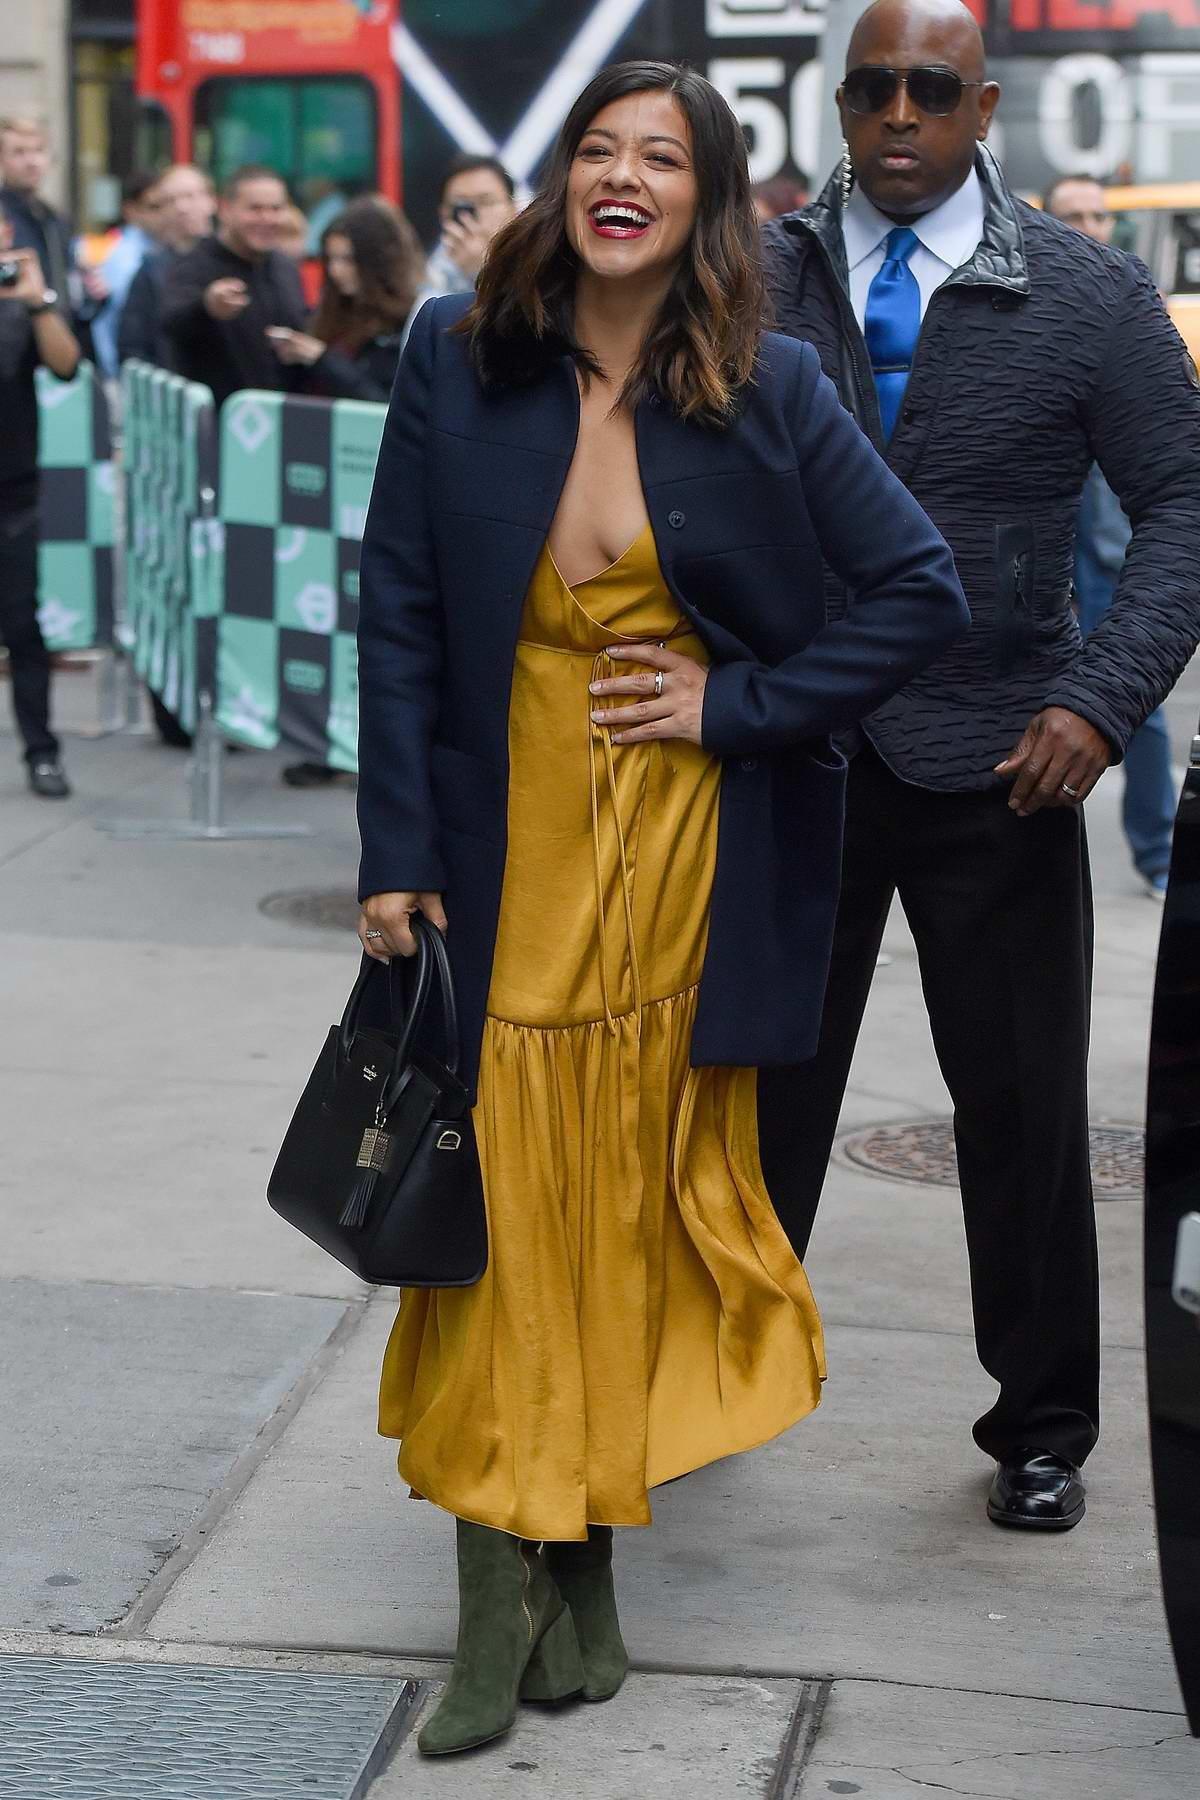 Gina Rodriguez seen outside AOL Build studios in New York City